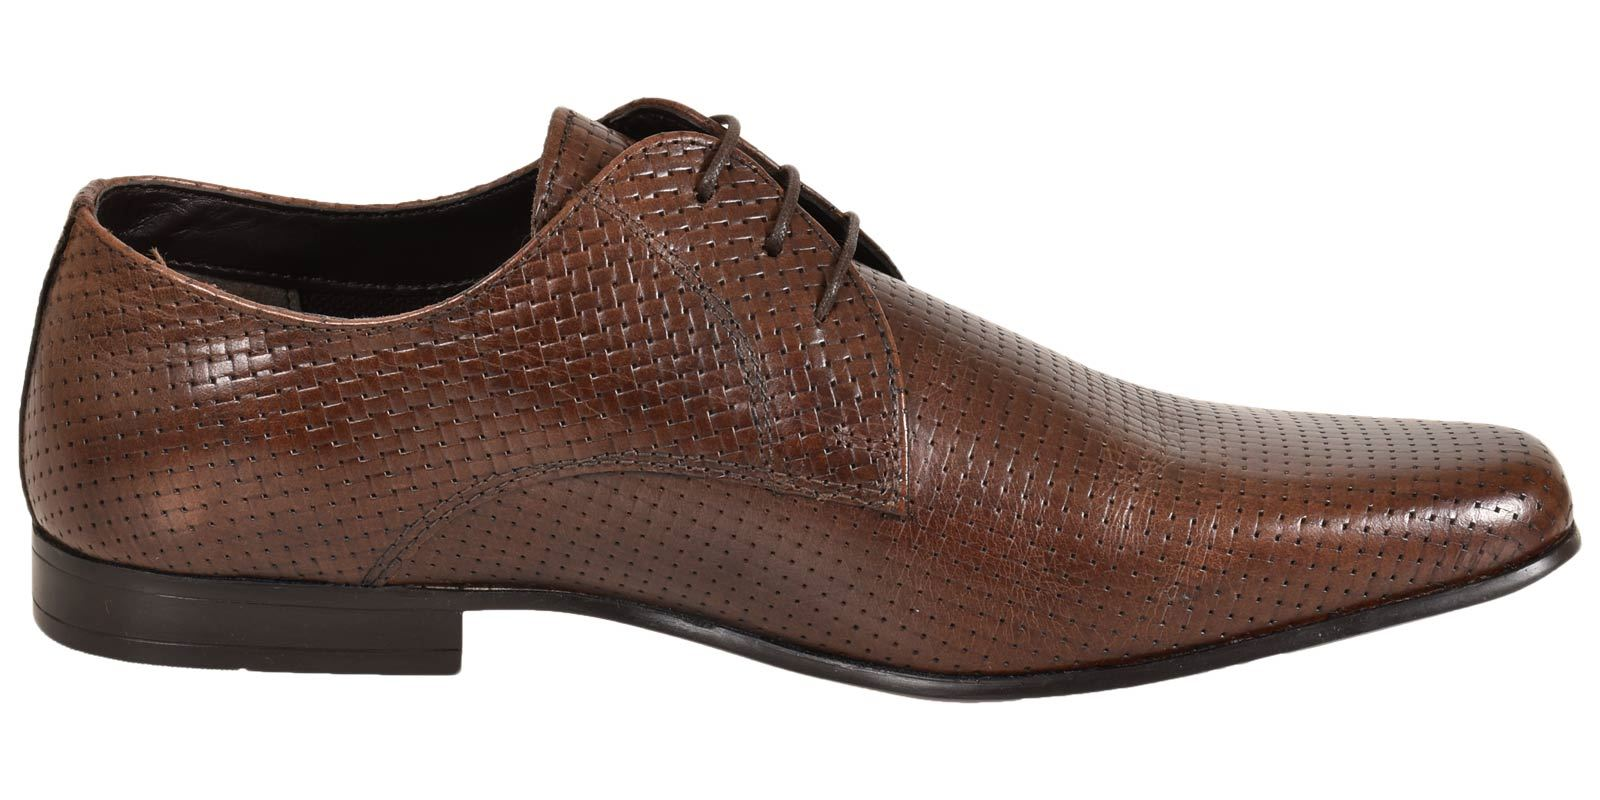 Mens-UK-Style-Leather-Lining-Formal-Office-Wedding-Smart-Work-Brogue-Shoes thumbnail 57